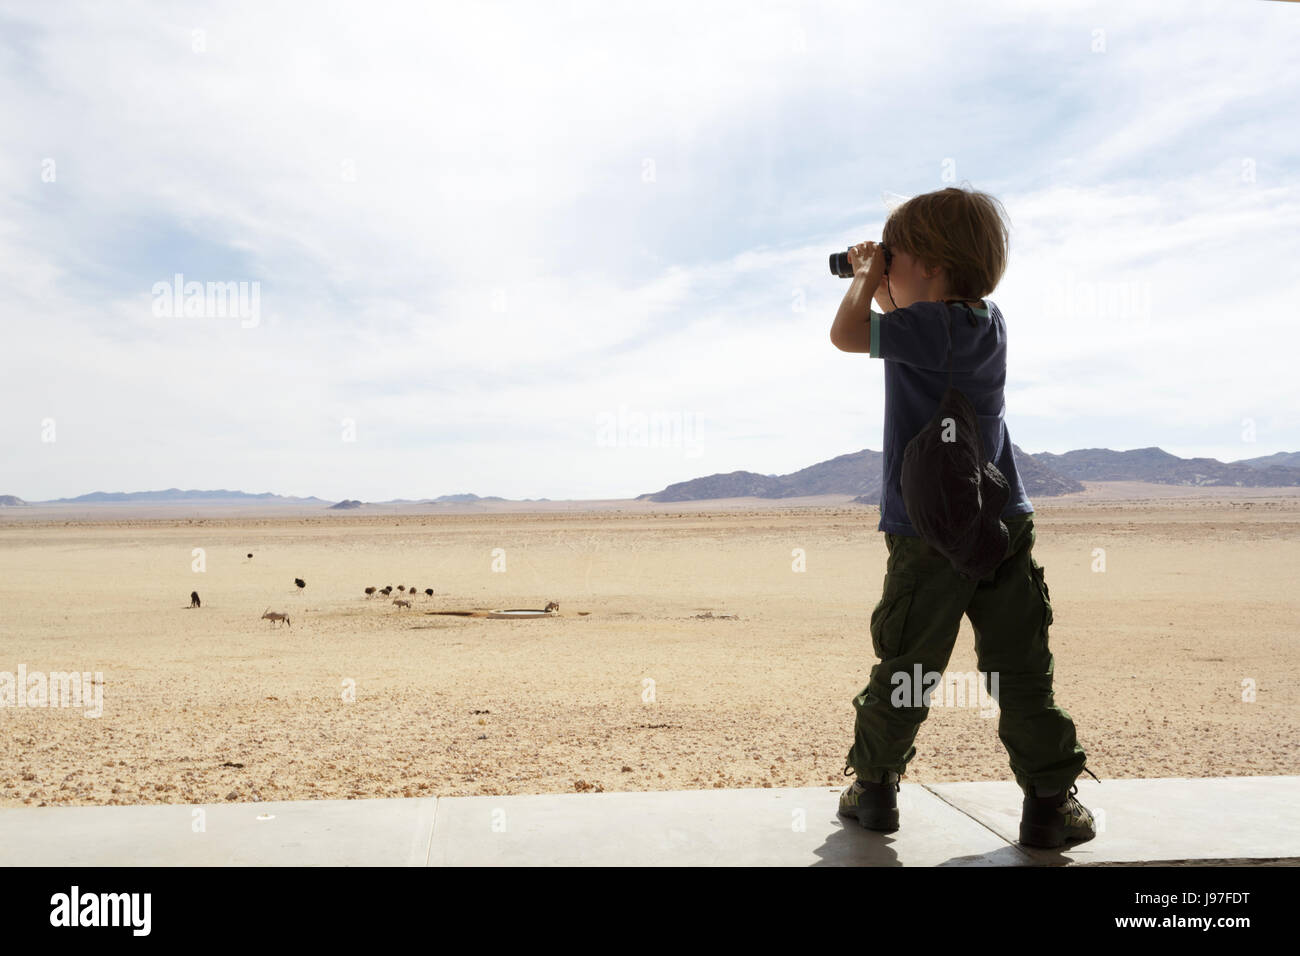 Young boy looking wit a binocular at wildlife in Garub viewpoint, Namibia. - Stock Image